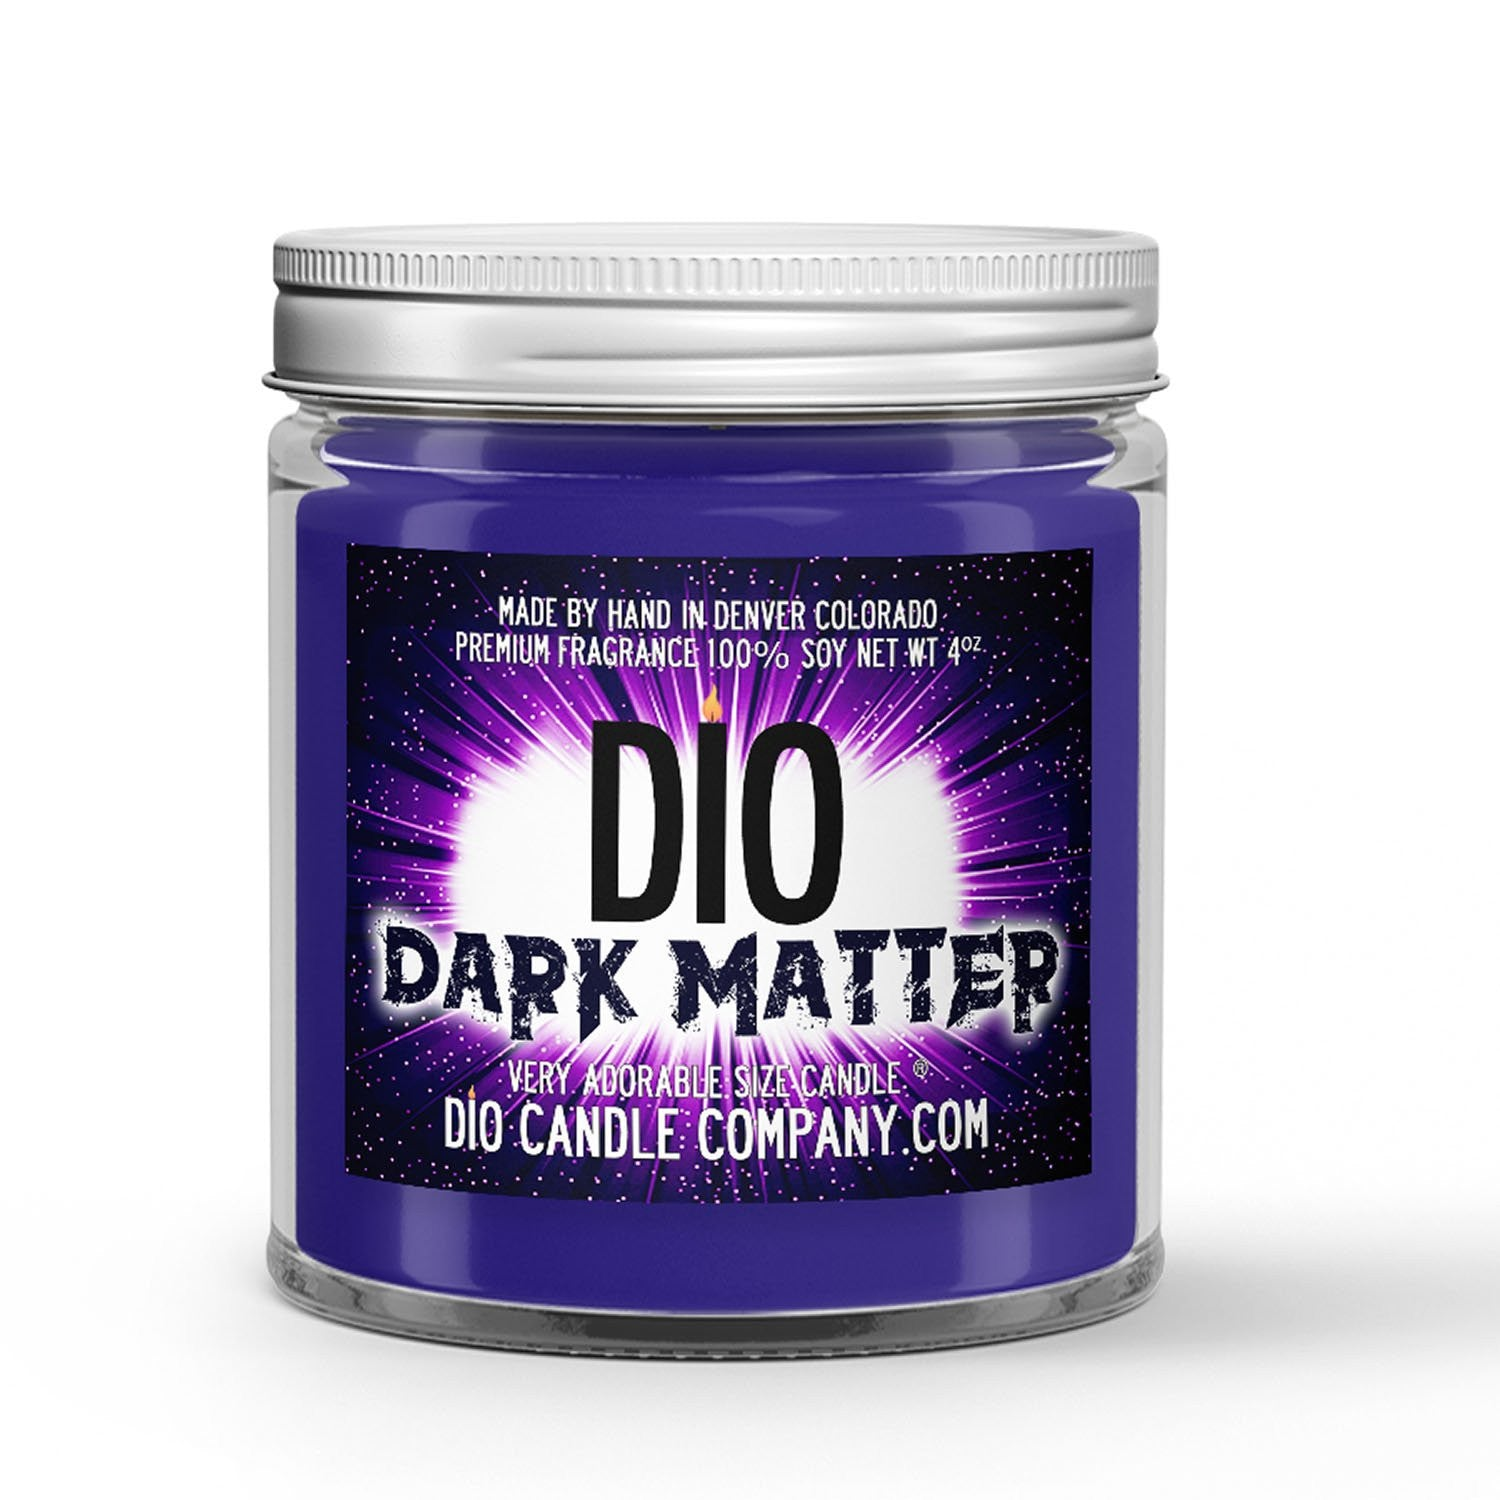 Dark Matter Candle - Jasmine - Cedar Wood - Moss - 4oz Very Adorable Size Candle® - Dio Candle Company